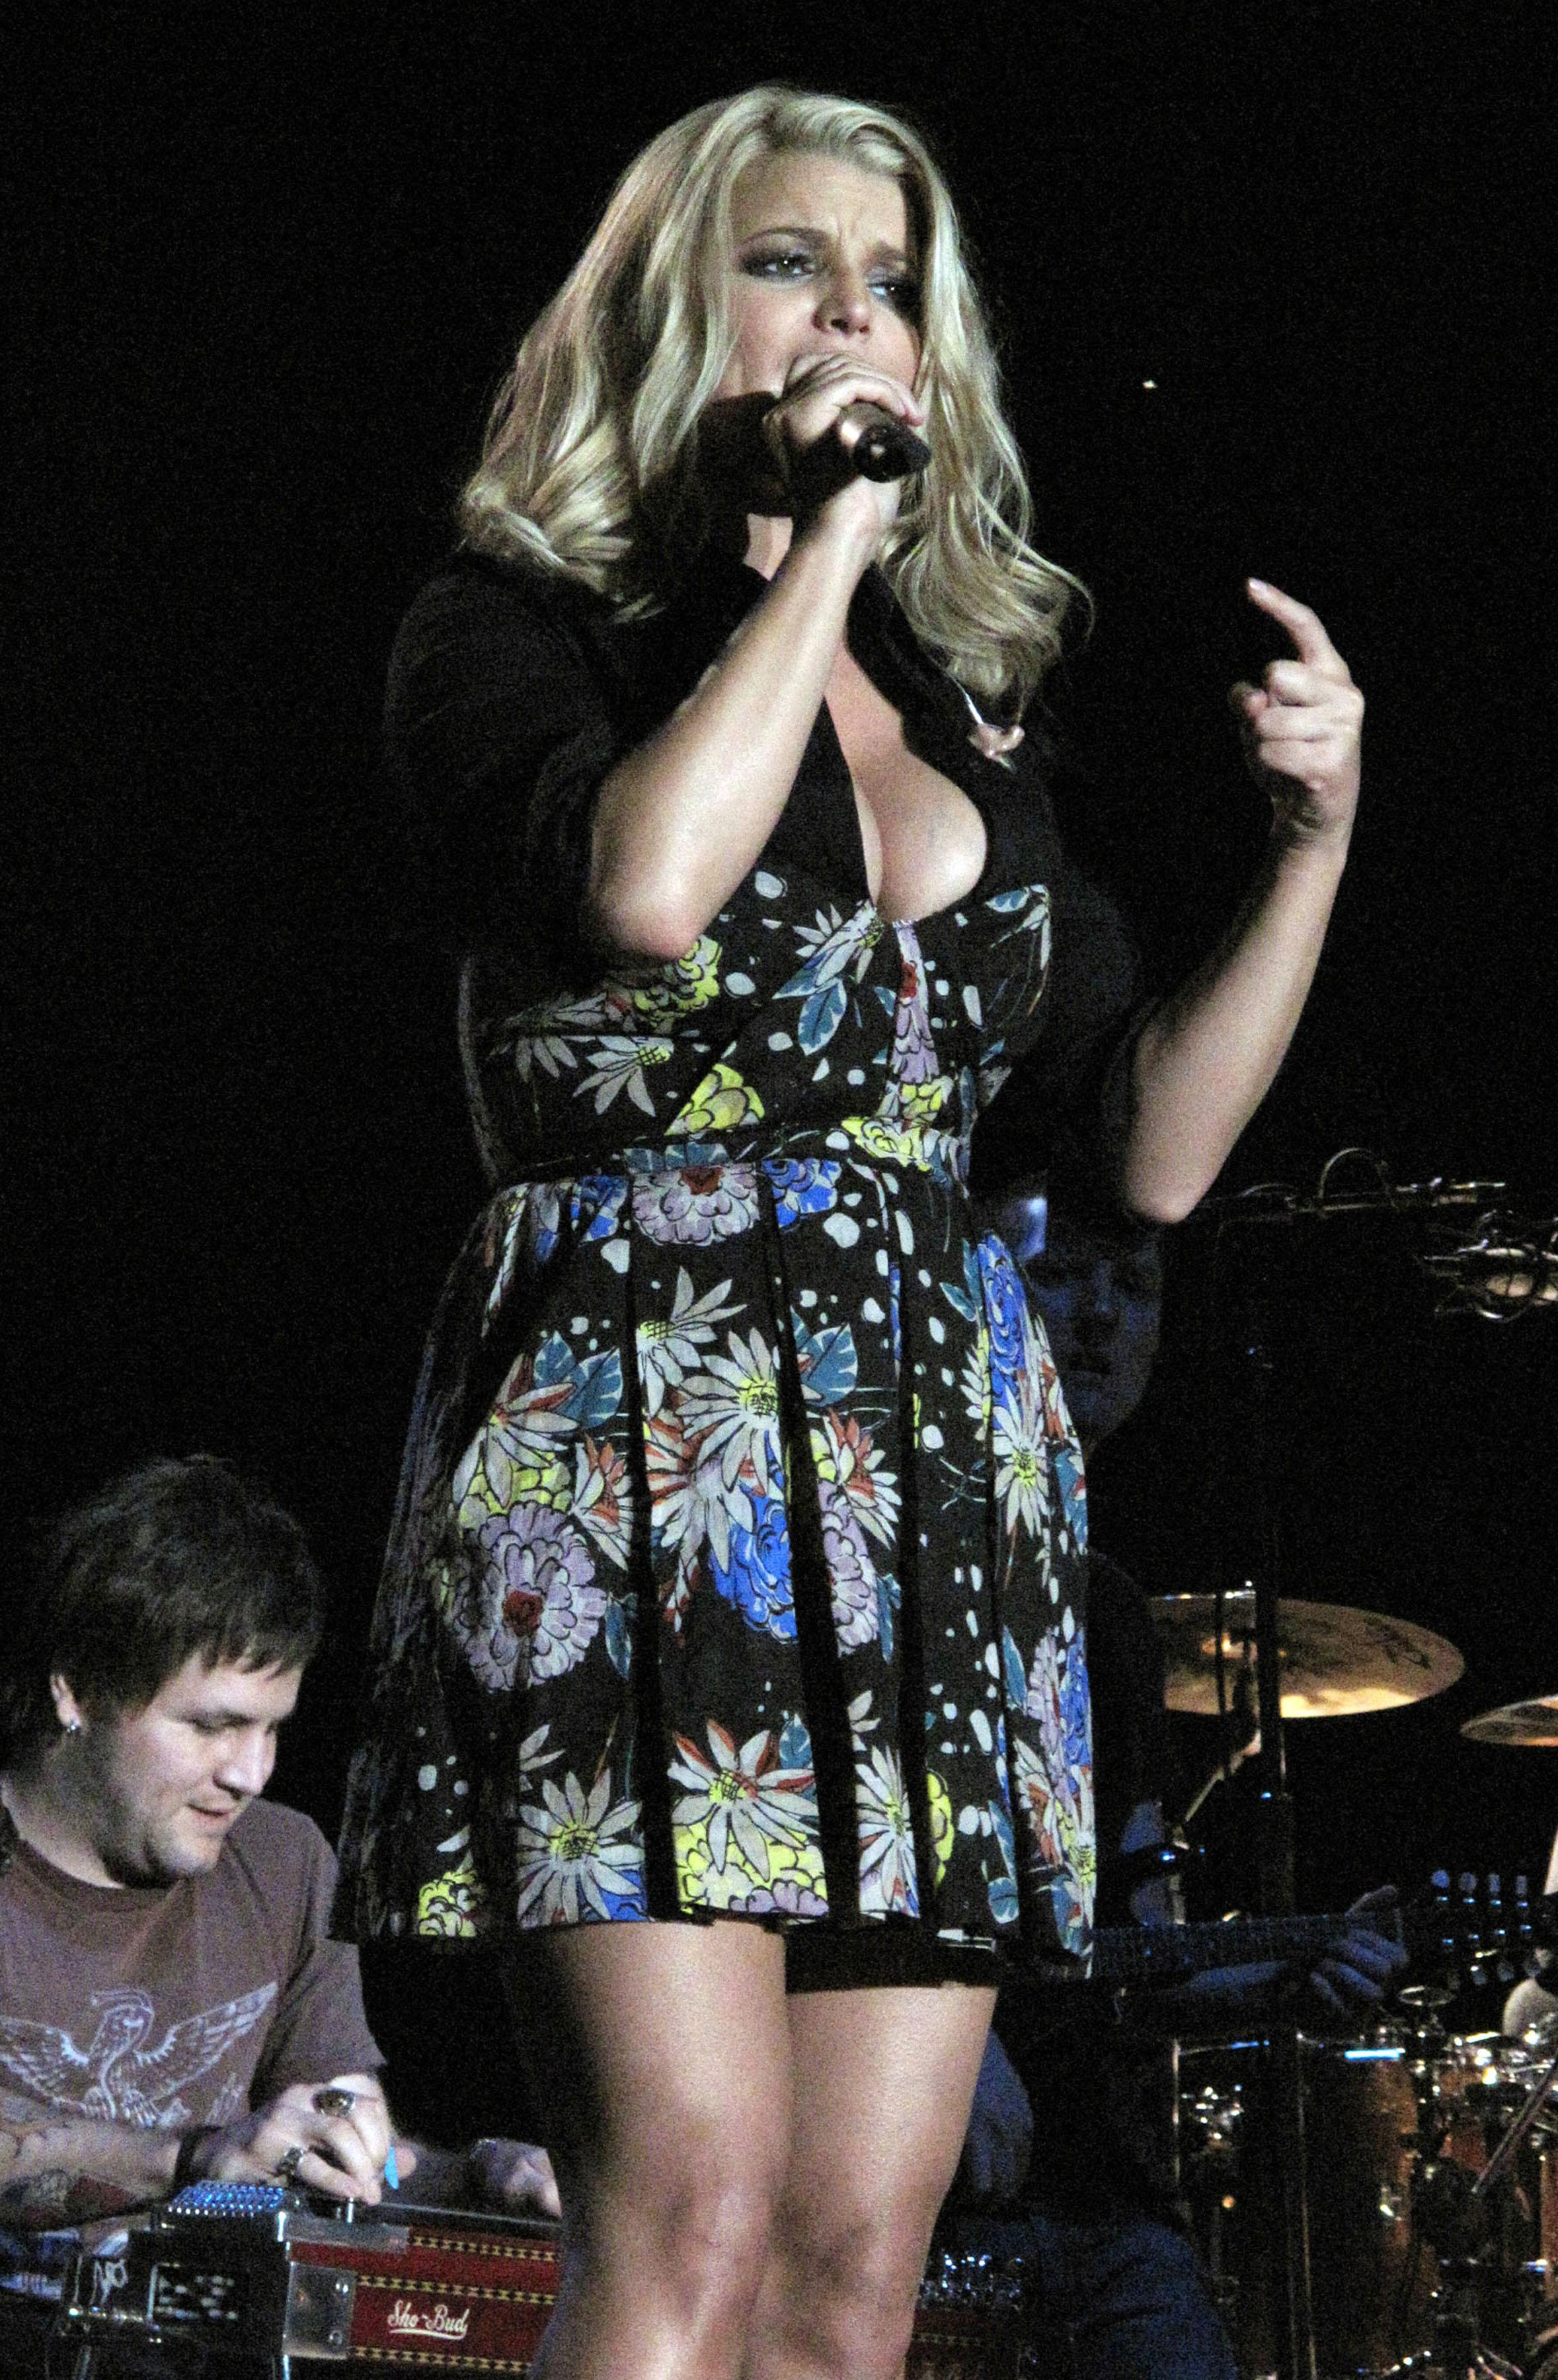 72227_Jessica_Simpson_performs_live_at_the_Dixon_May_Fair_and_Carnival_458_122_1187lo.jpg